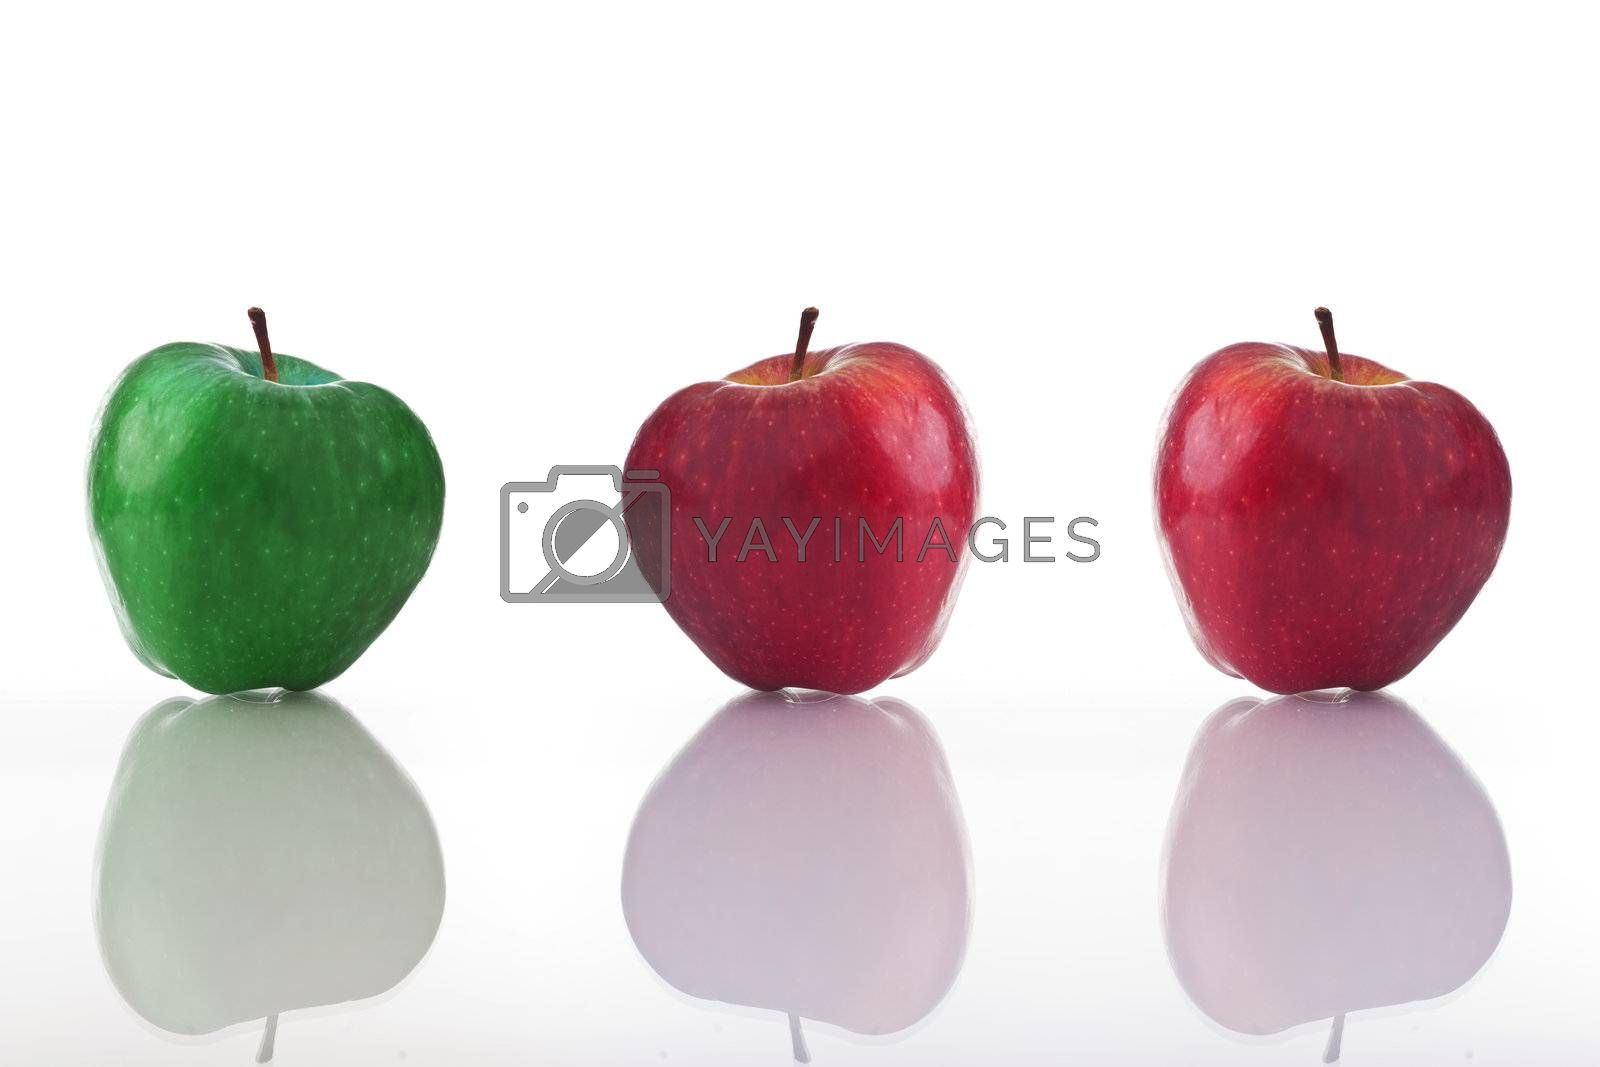 Three apples, one green and two red, isolated on white with reflection.